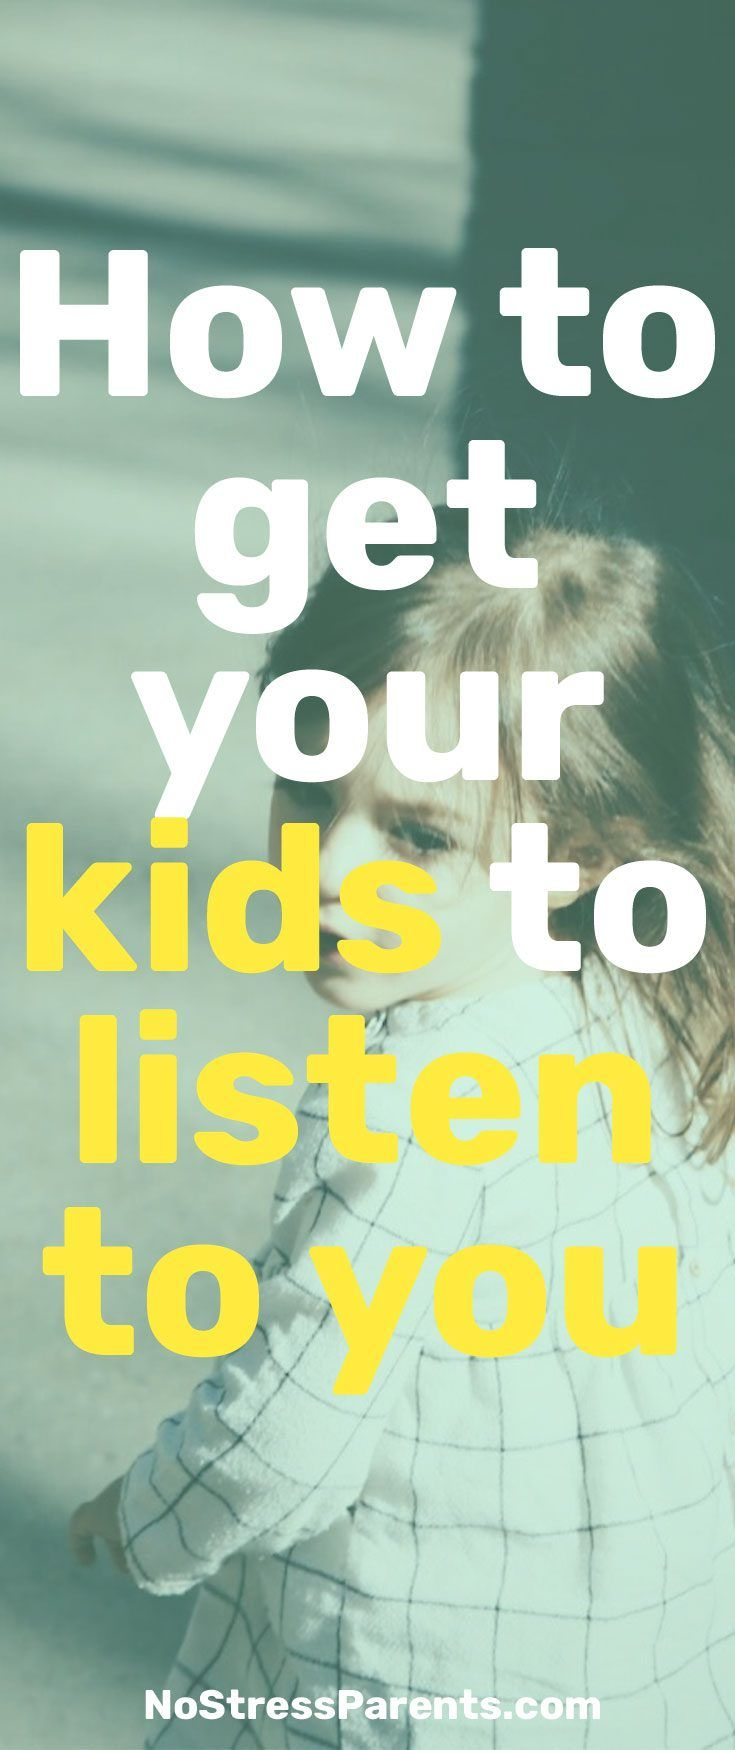 How to get your kids to listen to you is one of the biggest challenges as parents and, in this 6-steps guide we want to help you reach out to your kids.